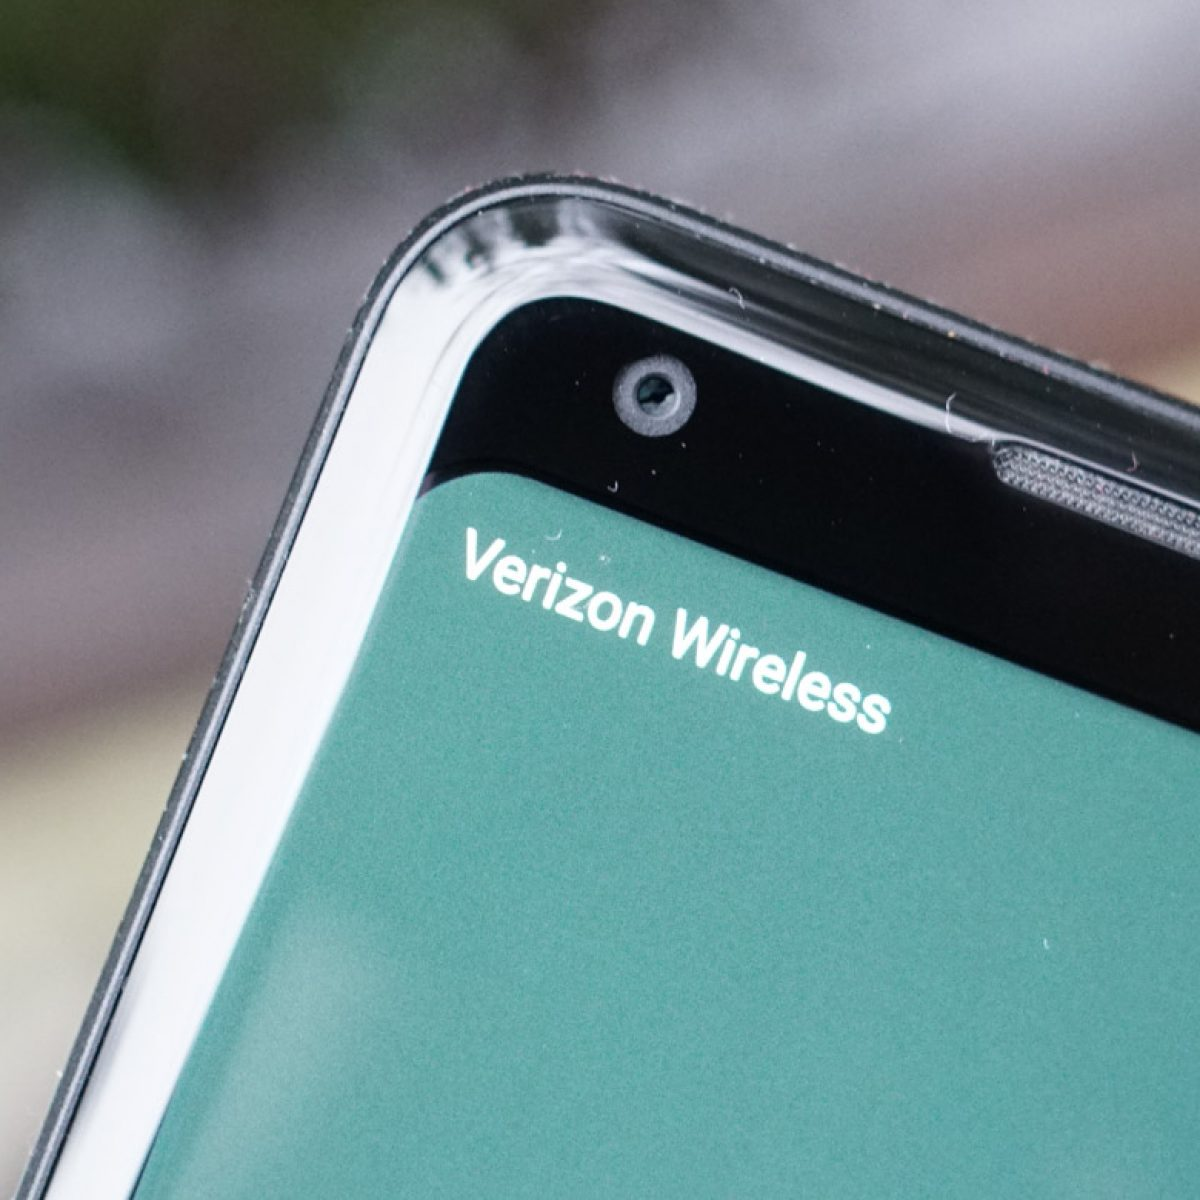 Verizon S Total Mobile Protection Plan Price Increases To 13